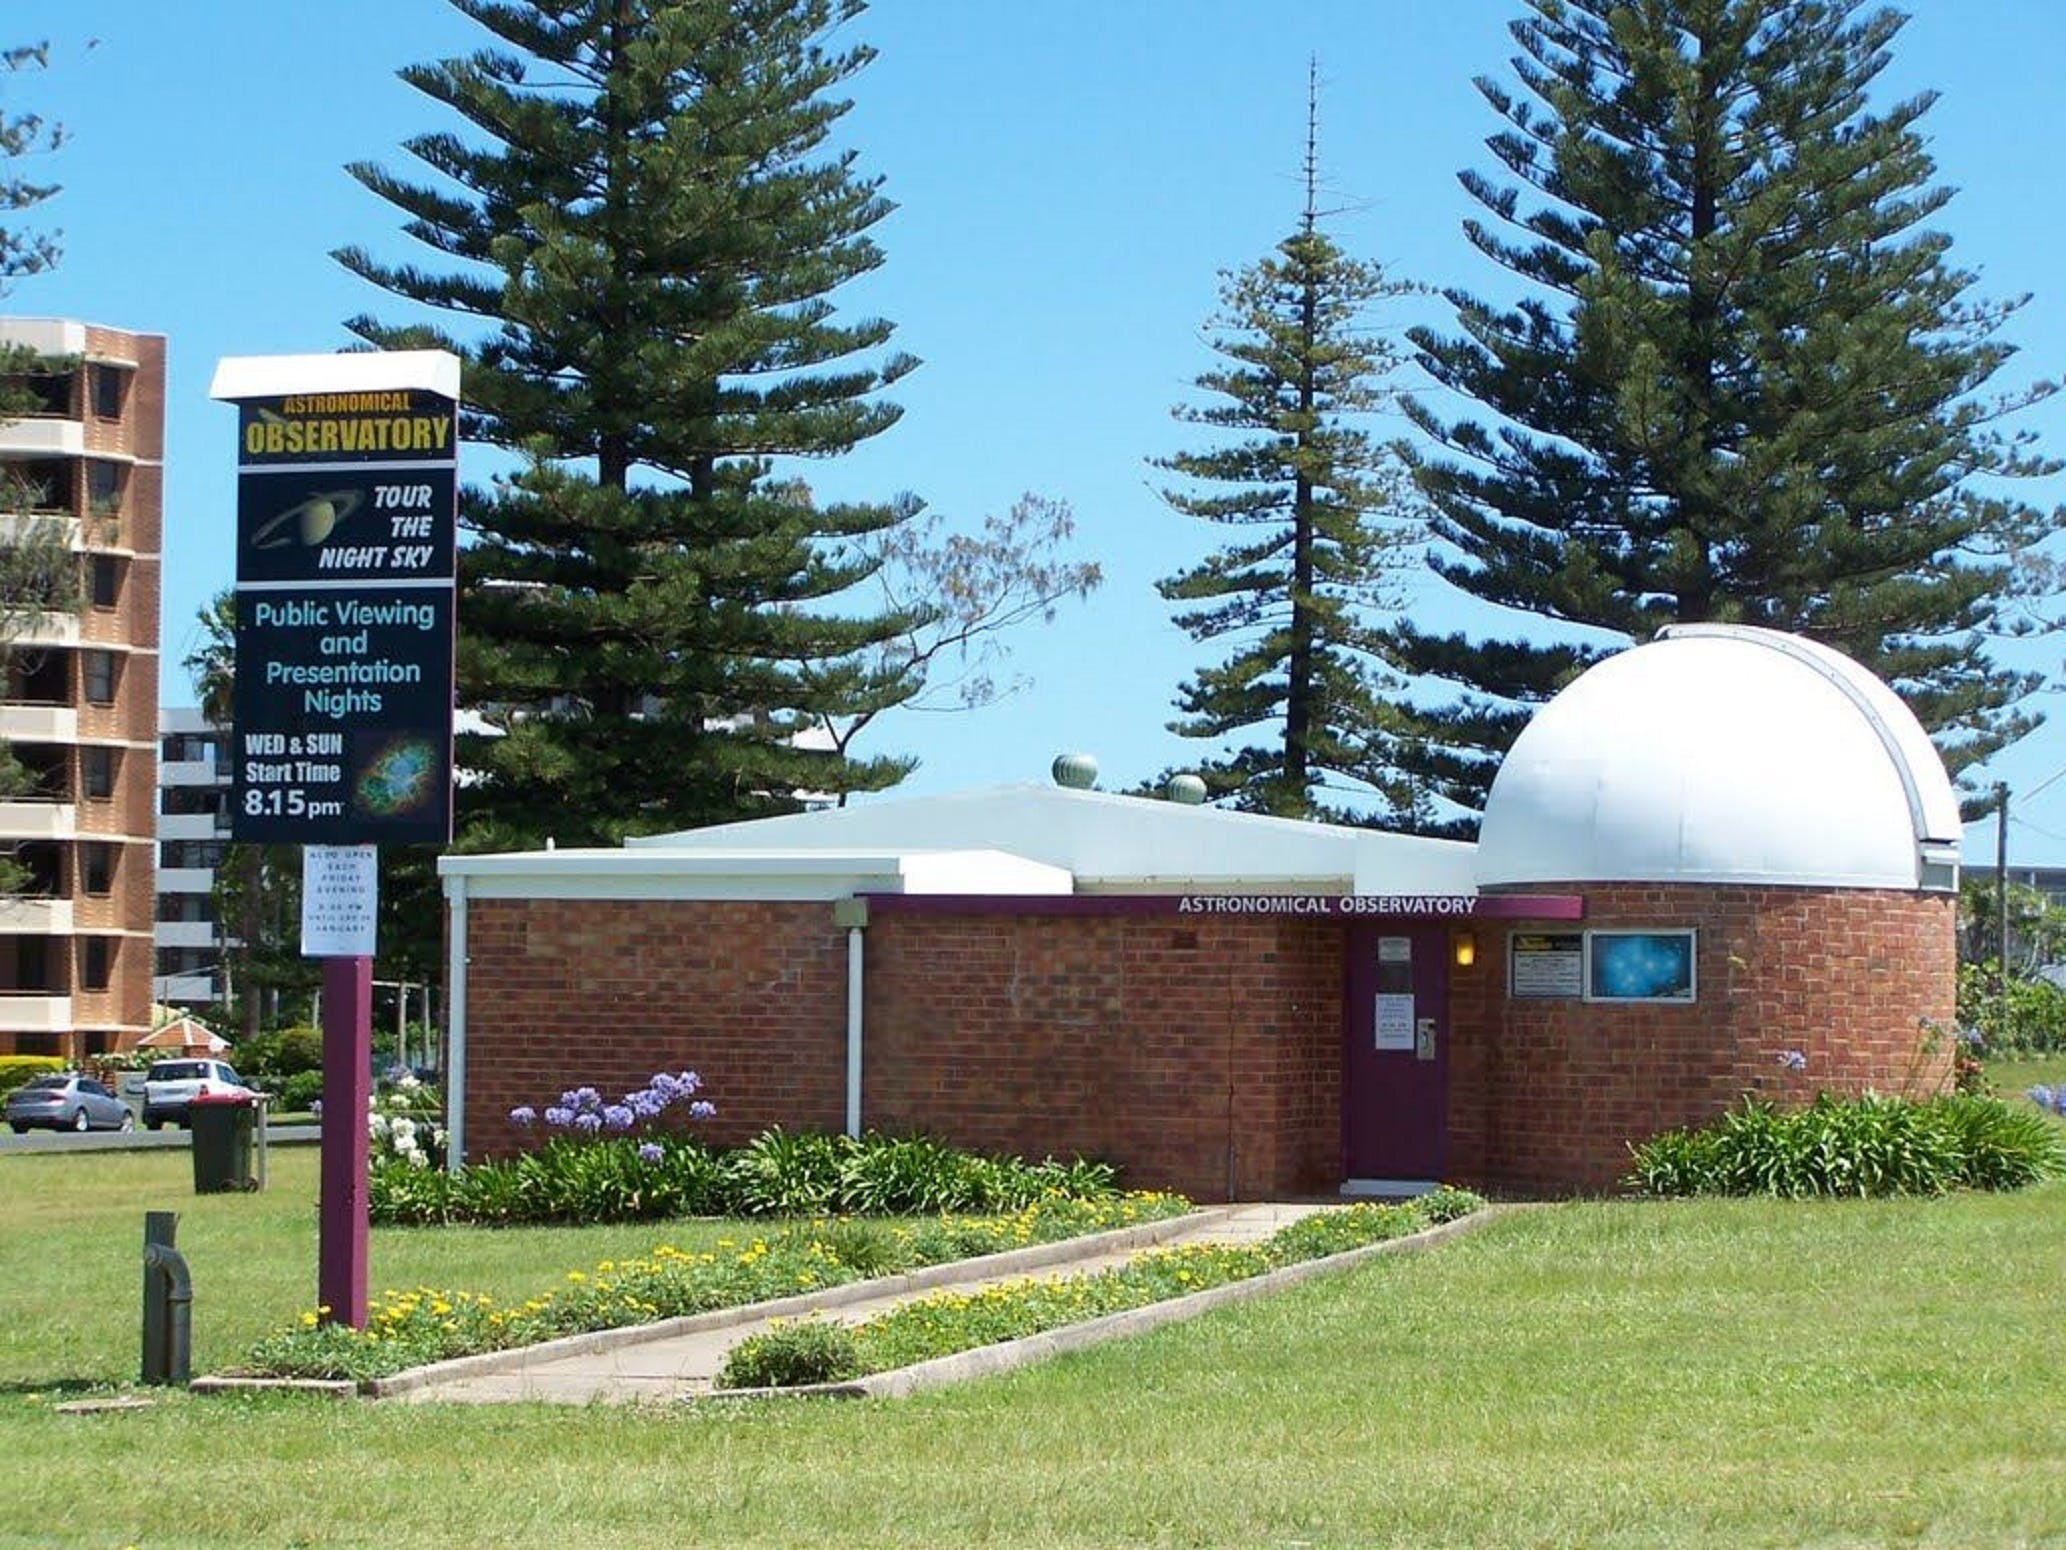 Port Macquarie Astronomical Observatory - Attractions Perth